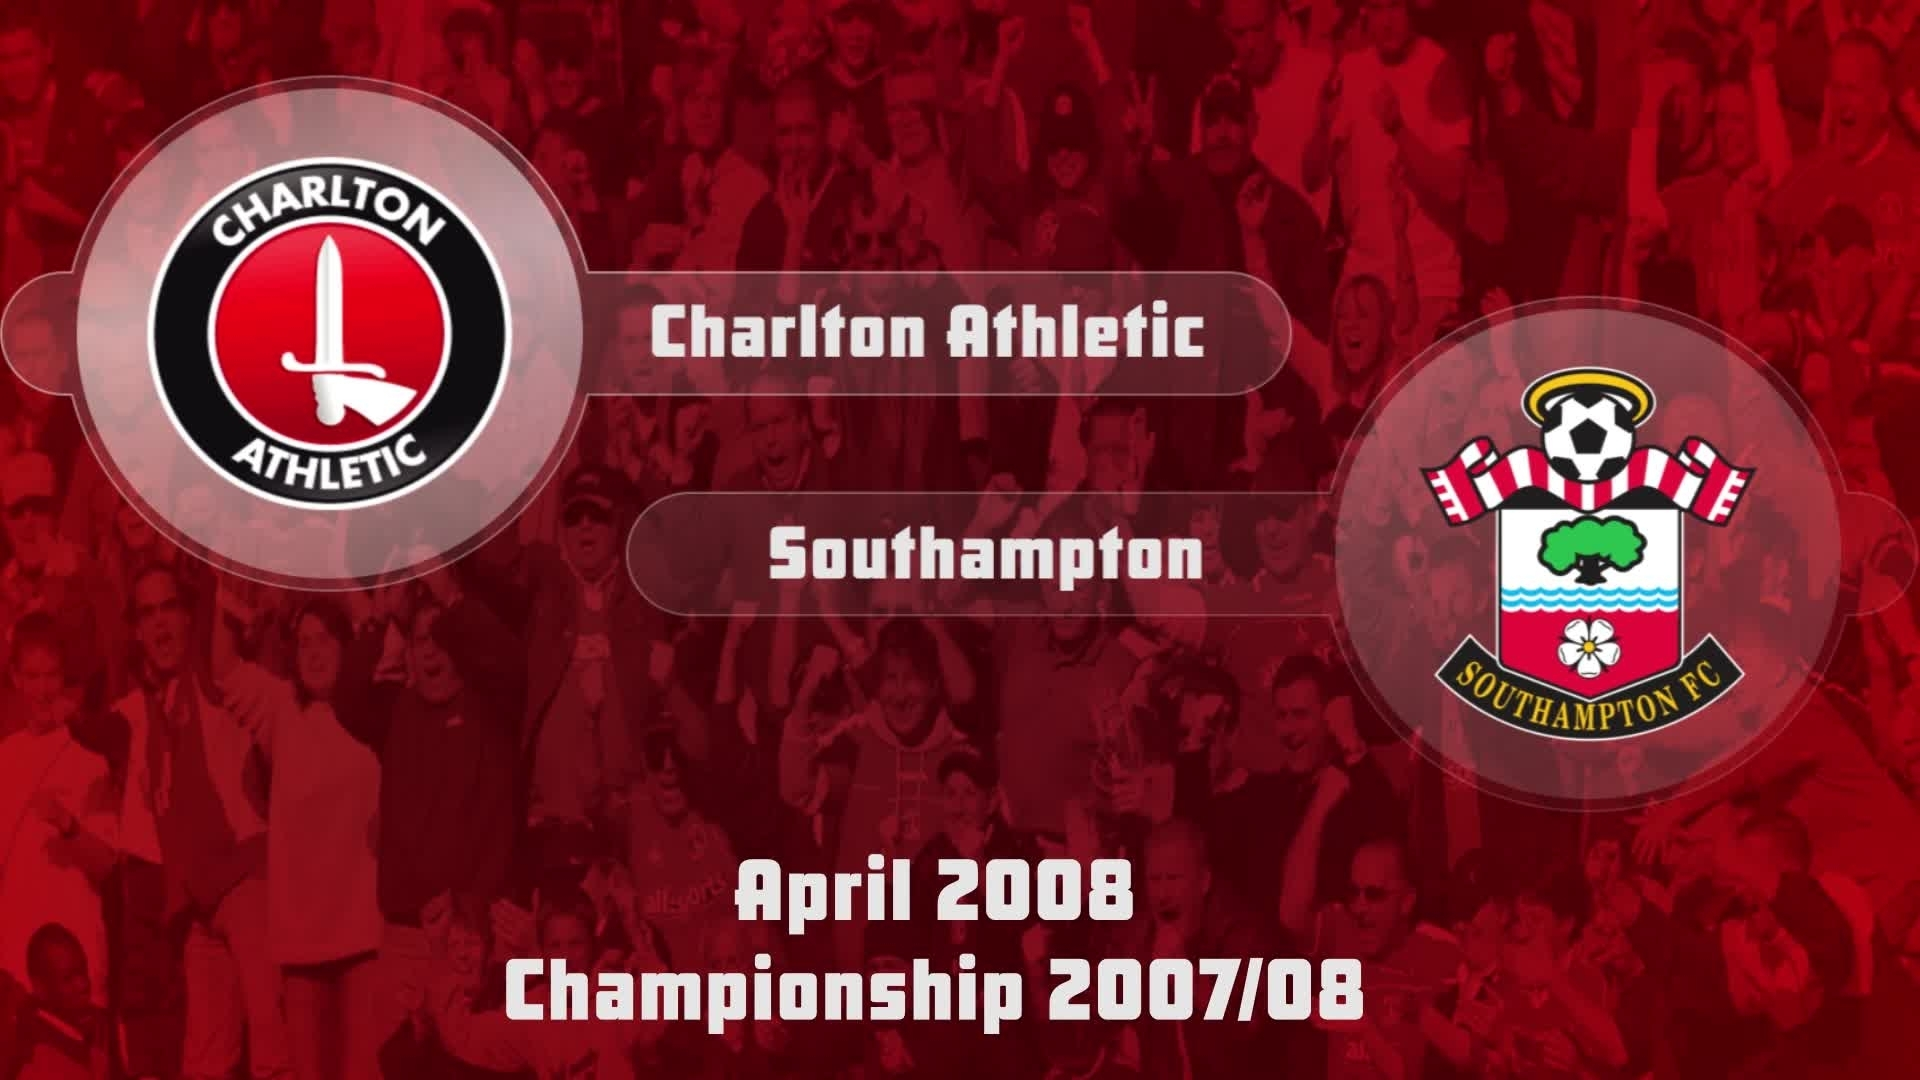 48 HIGHLIGHTS | Charlton 1 Southampton 1 (April 2008)